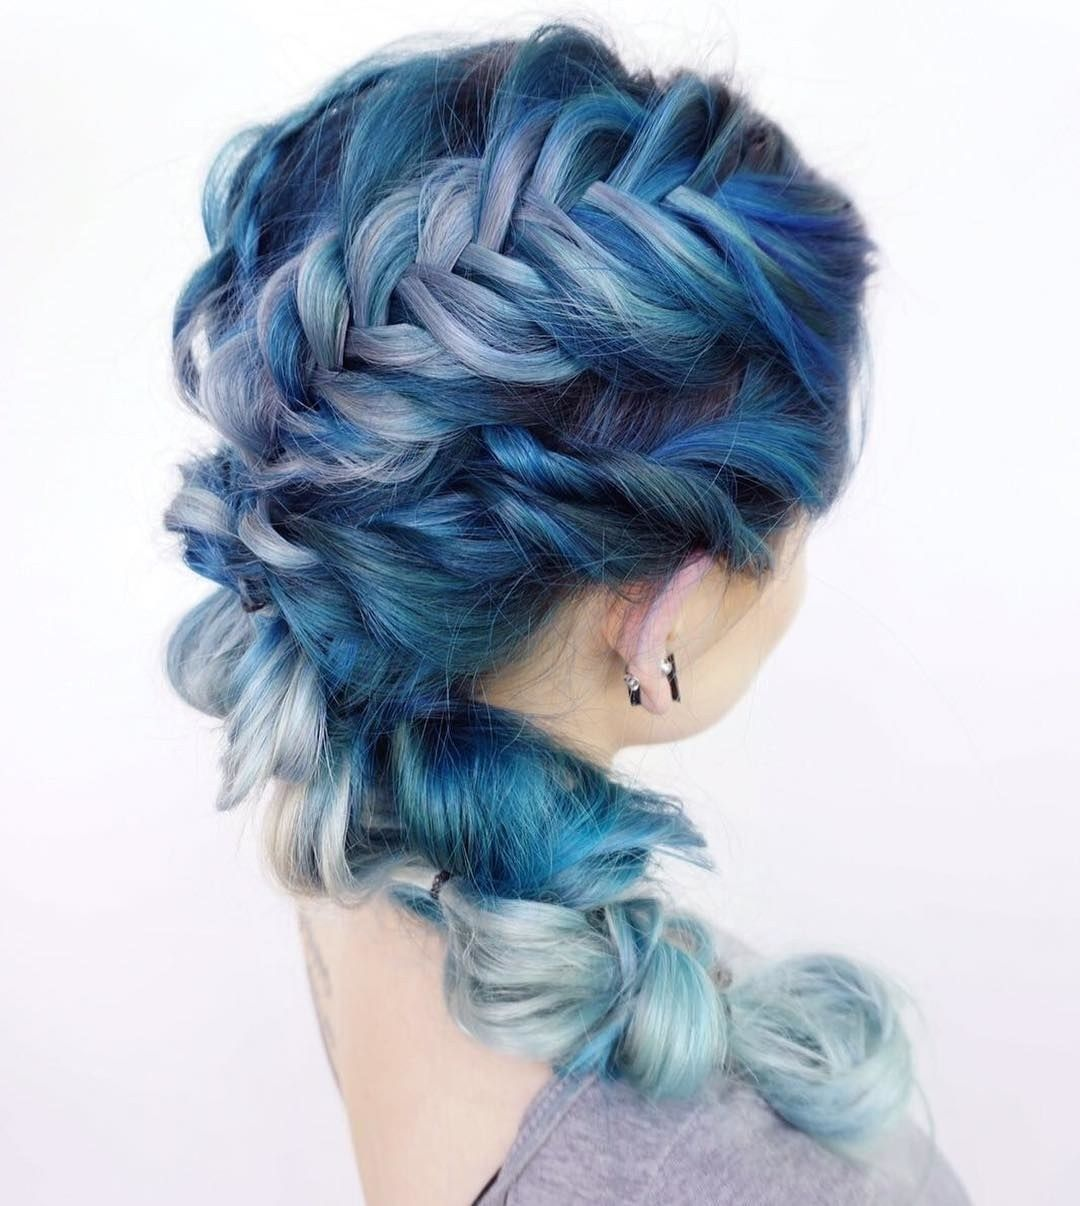 gorgeous summer hair ideas that are straightup braid porn hair